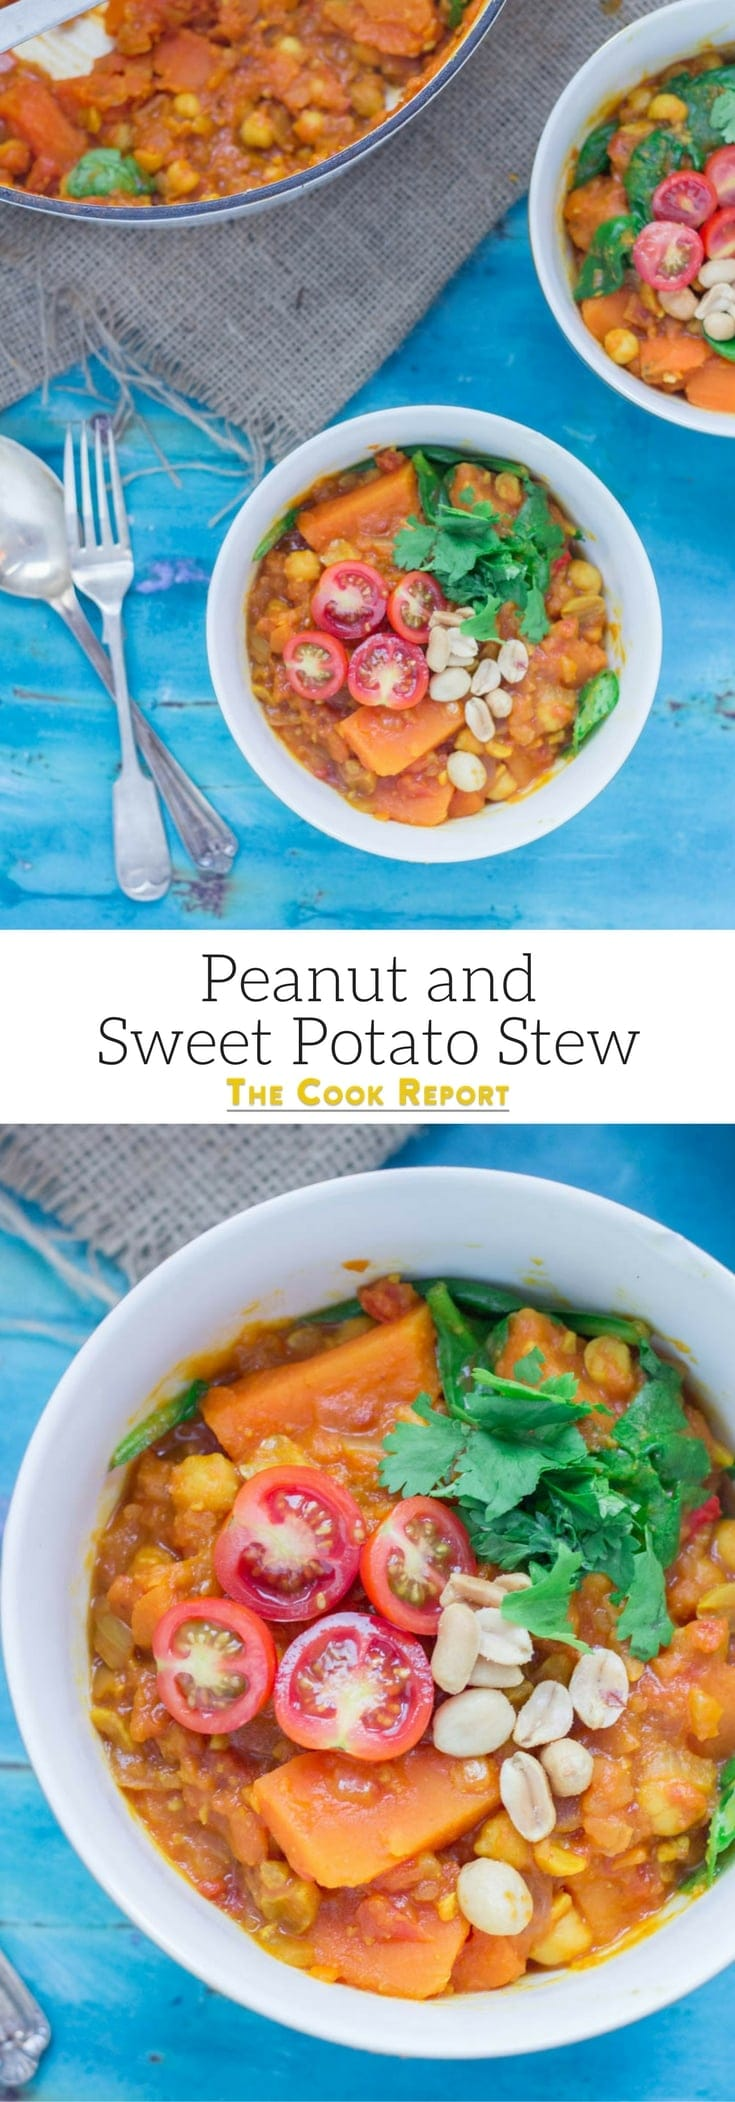 This peanut and sweet potato stew is spicy, filling and delicious. Add all your favourite toppings and serve with a healthy portion of rice or other grain. #vegetarian #comfortfood #healthy